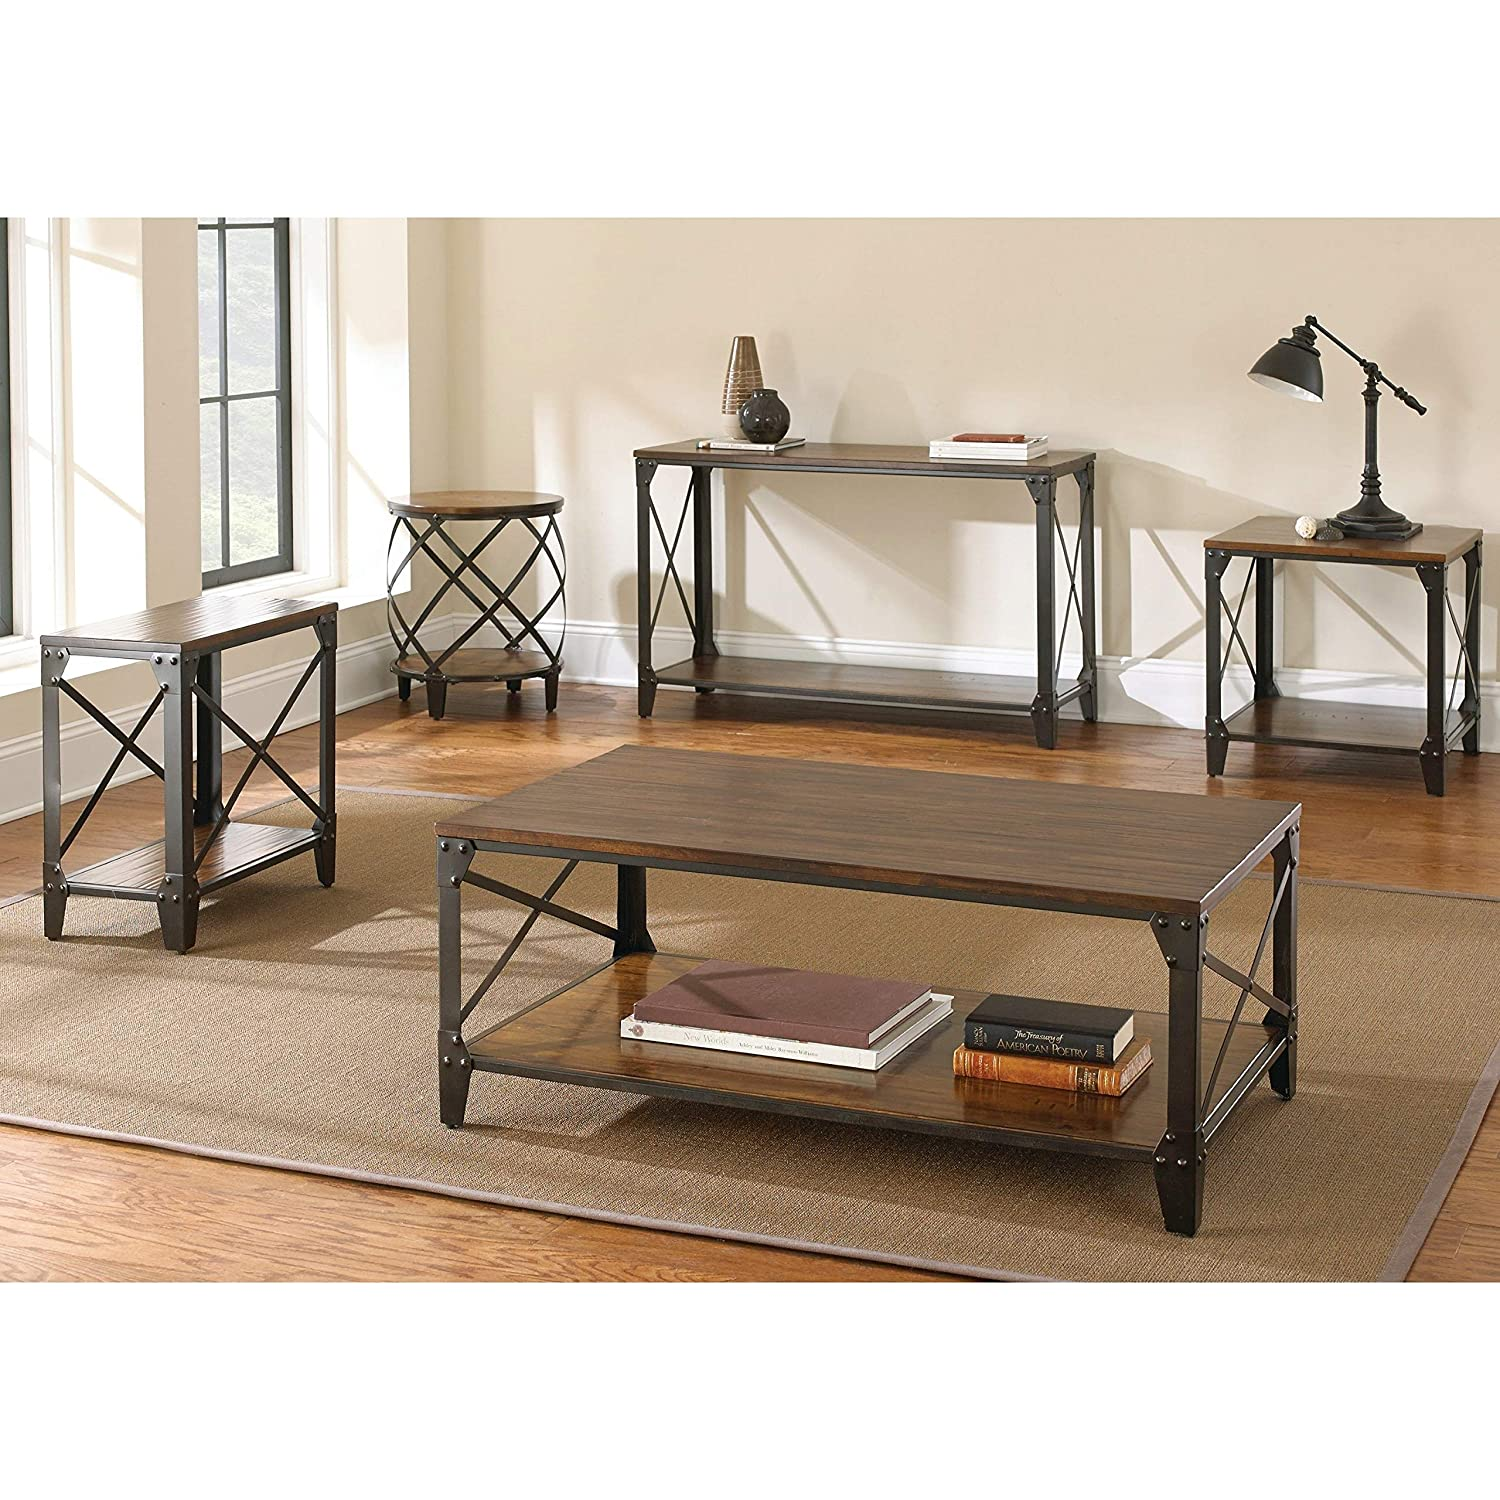 Windham Solid Birch Wood – Iron Contemporary Coffee Table Rustic – Industrial Style